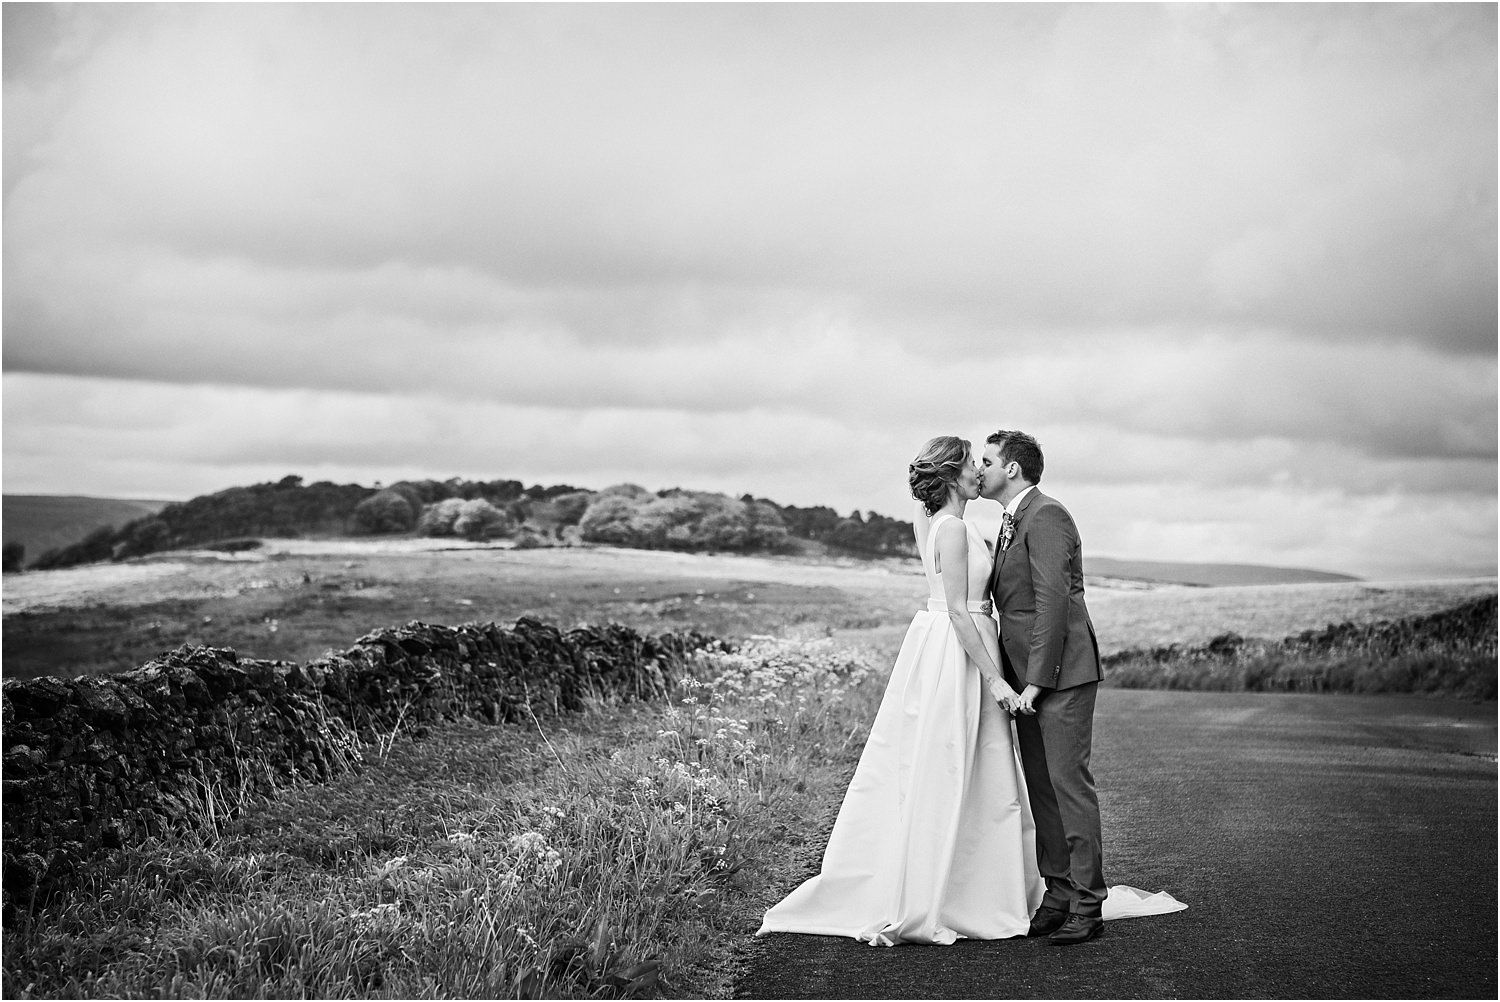 Bride and groom share a kiss on Lancashire fells in The Trough of Bowland